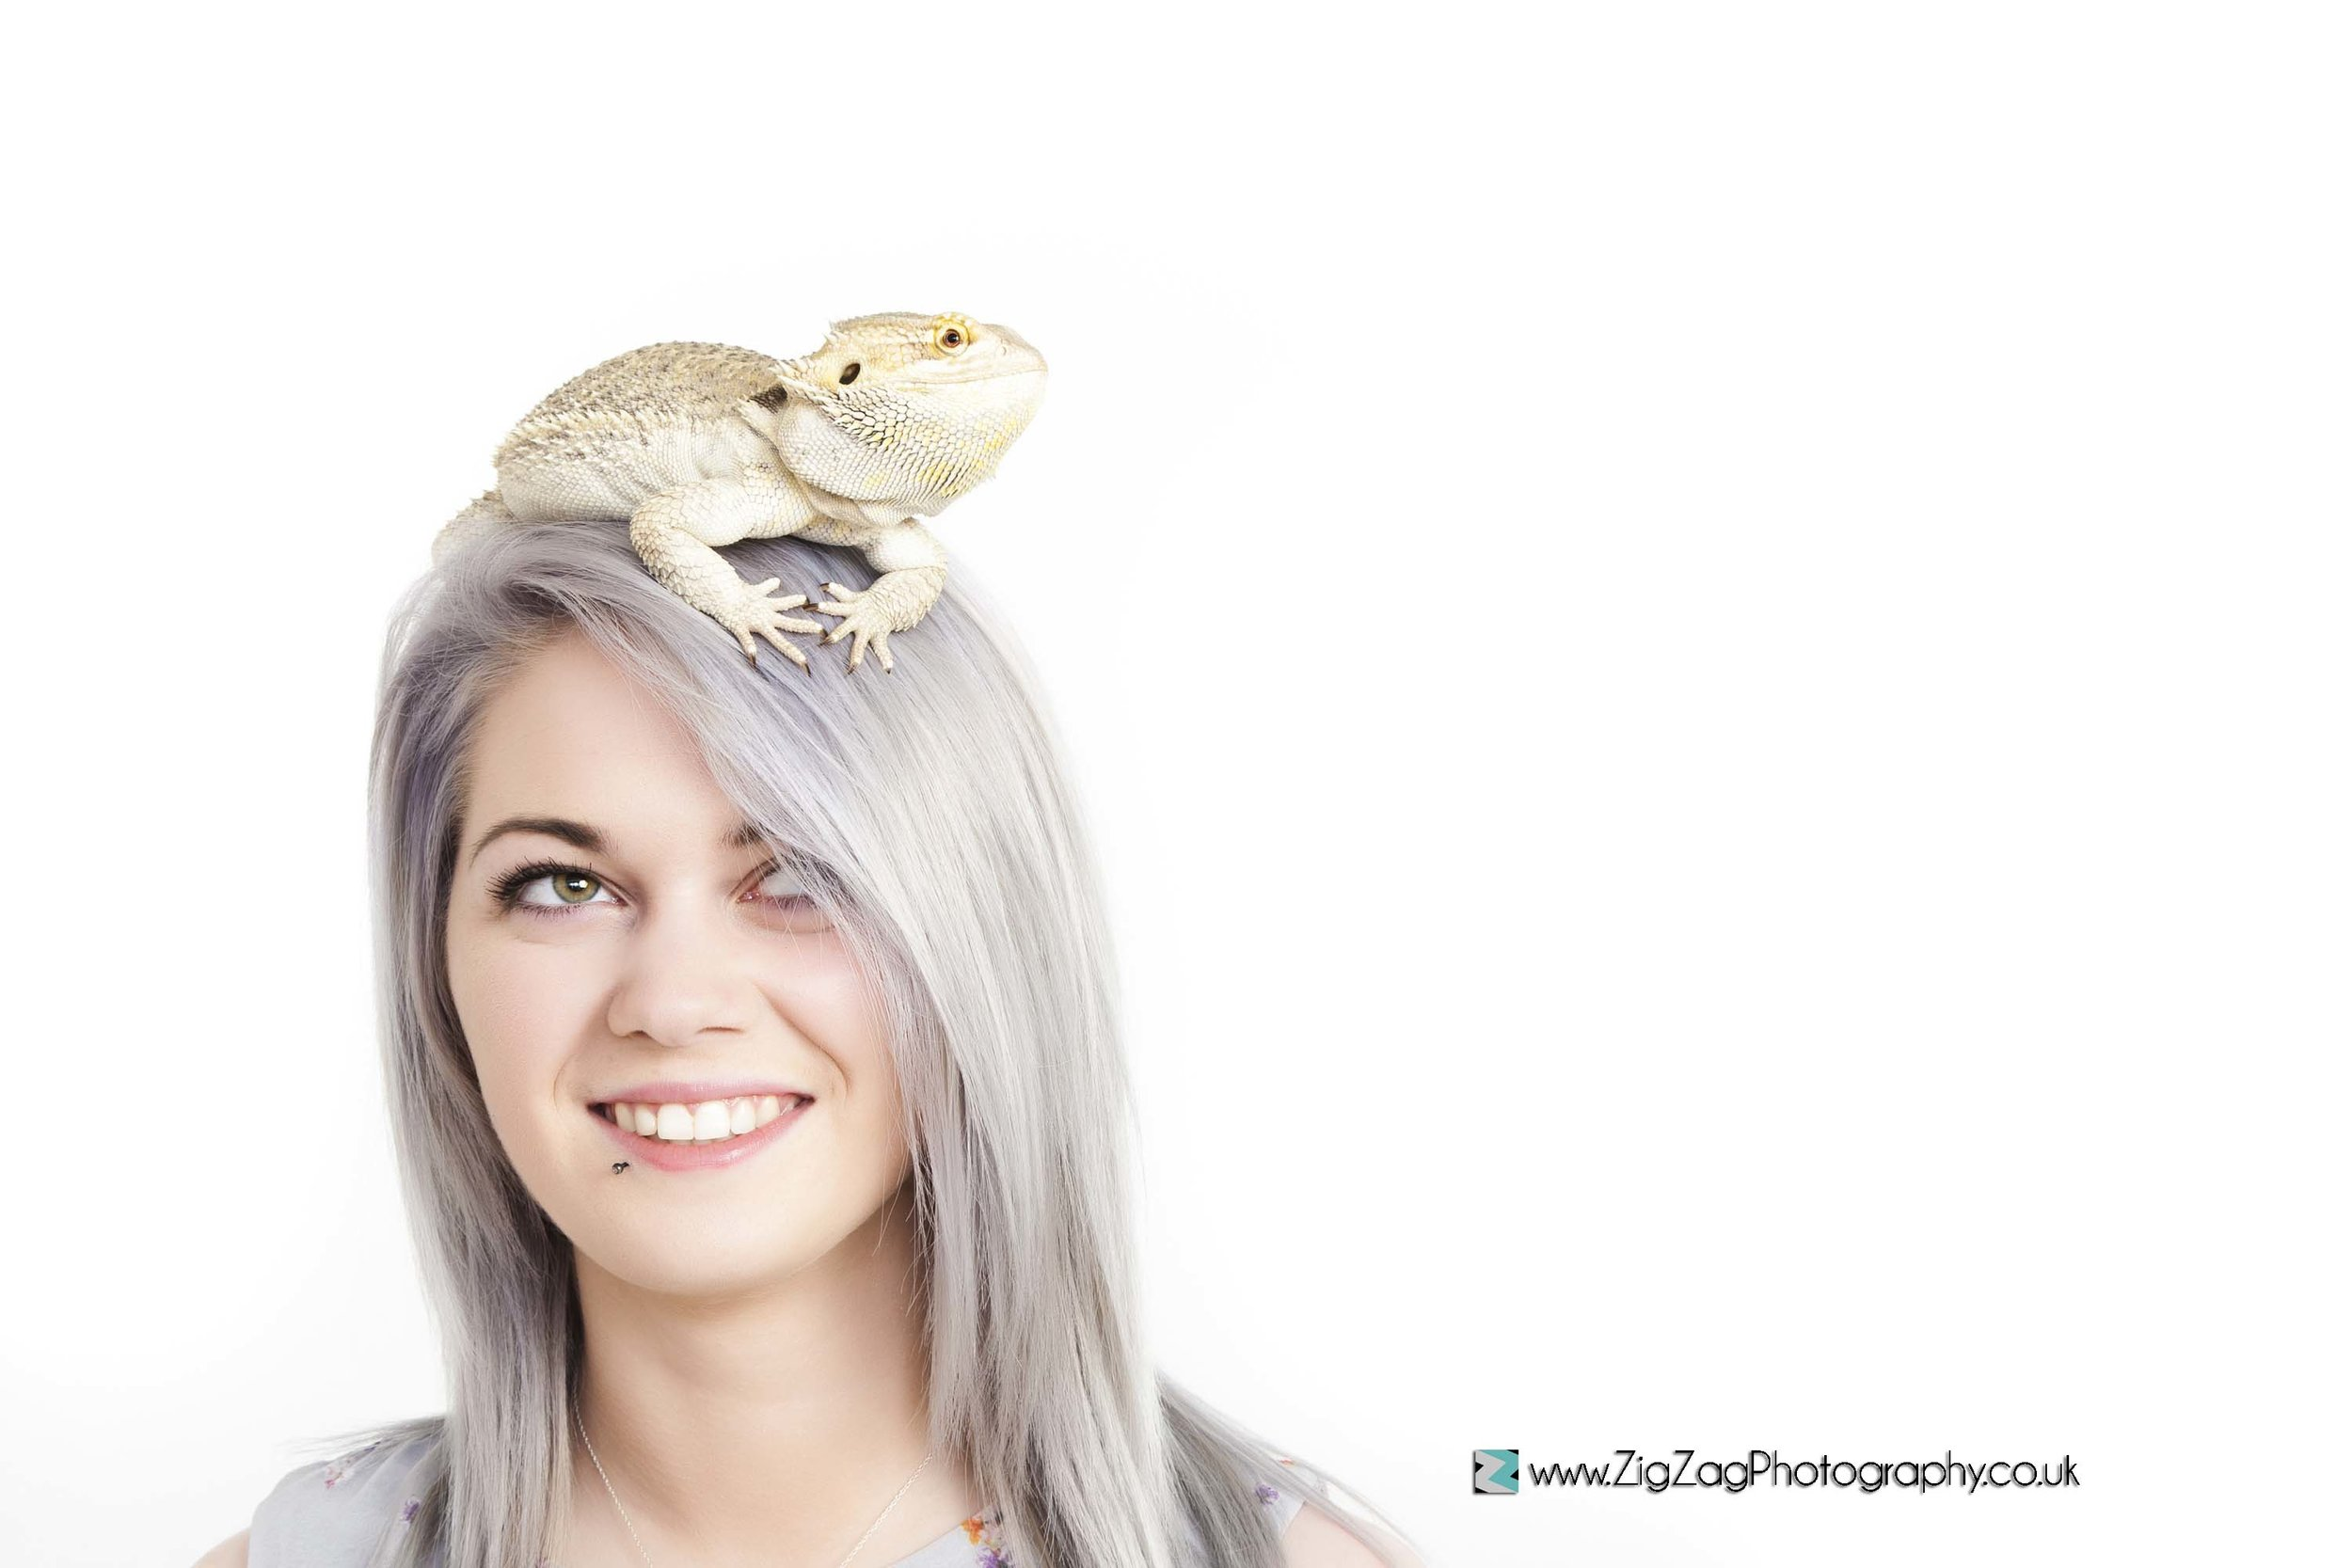 photography-photoshoot-leicester-studio-session-zigzag-reptile-cameleon-pets-animal-girl-hair-blonde-white.jpg